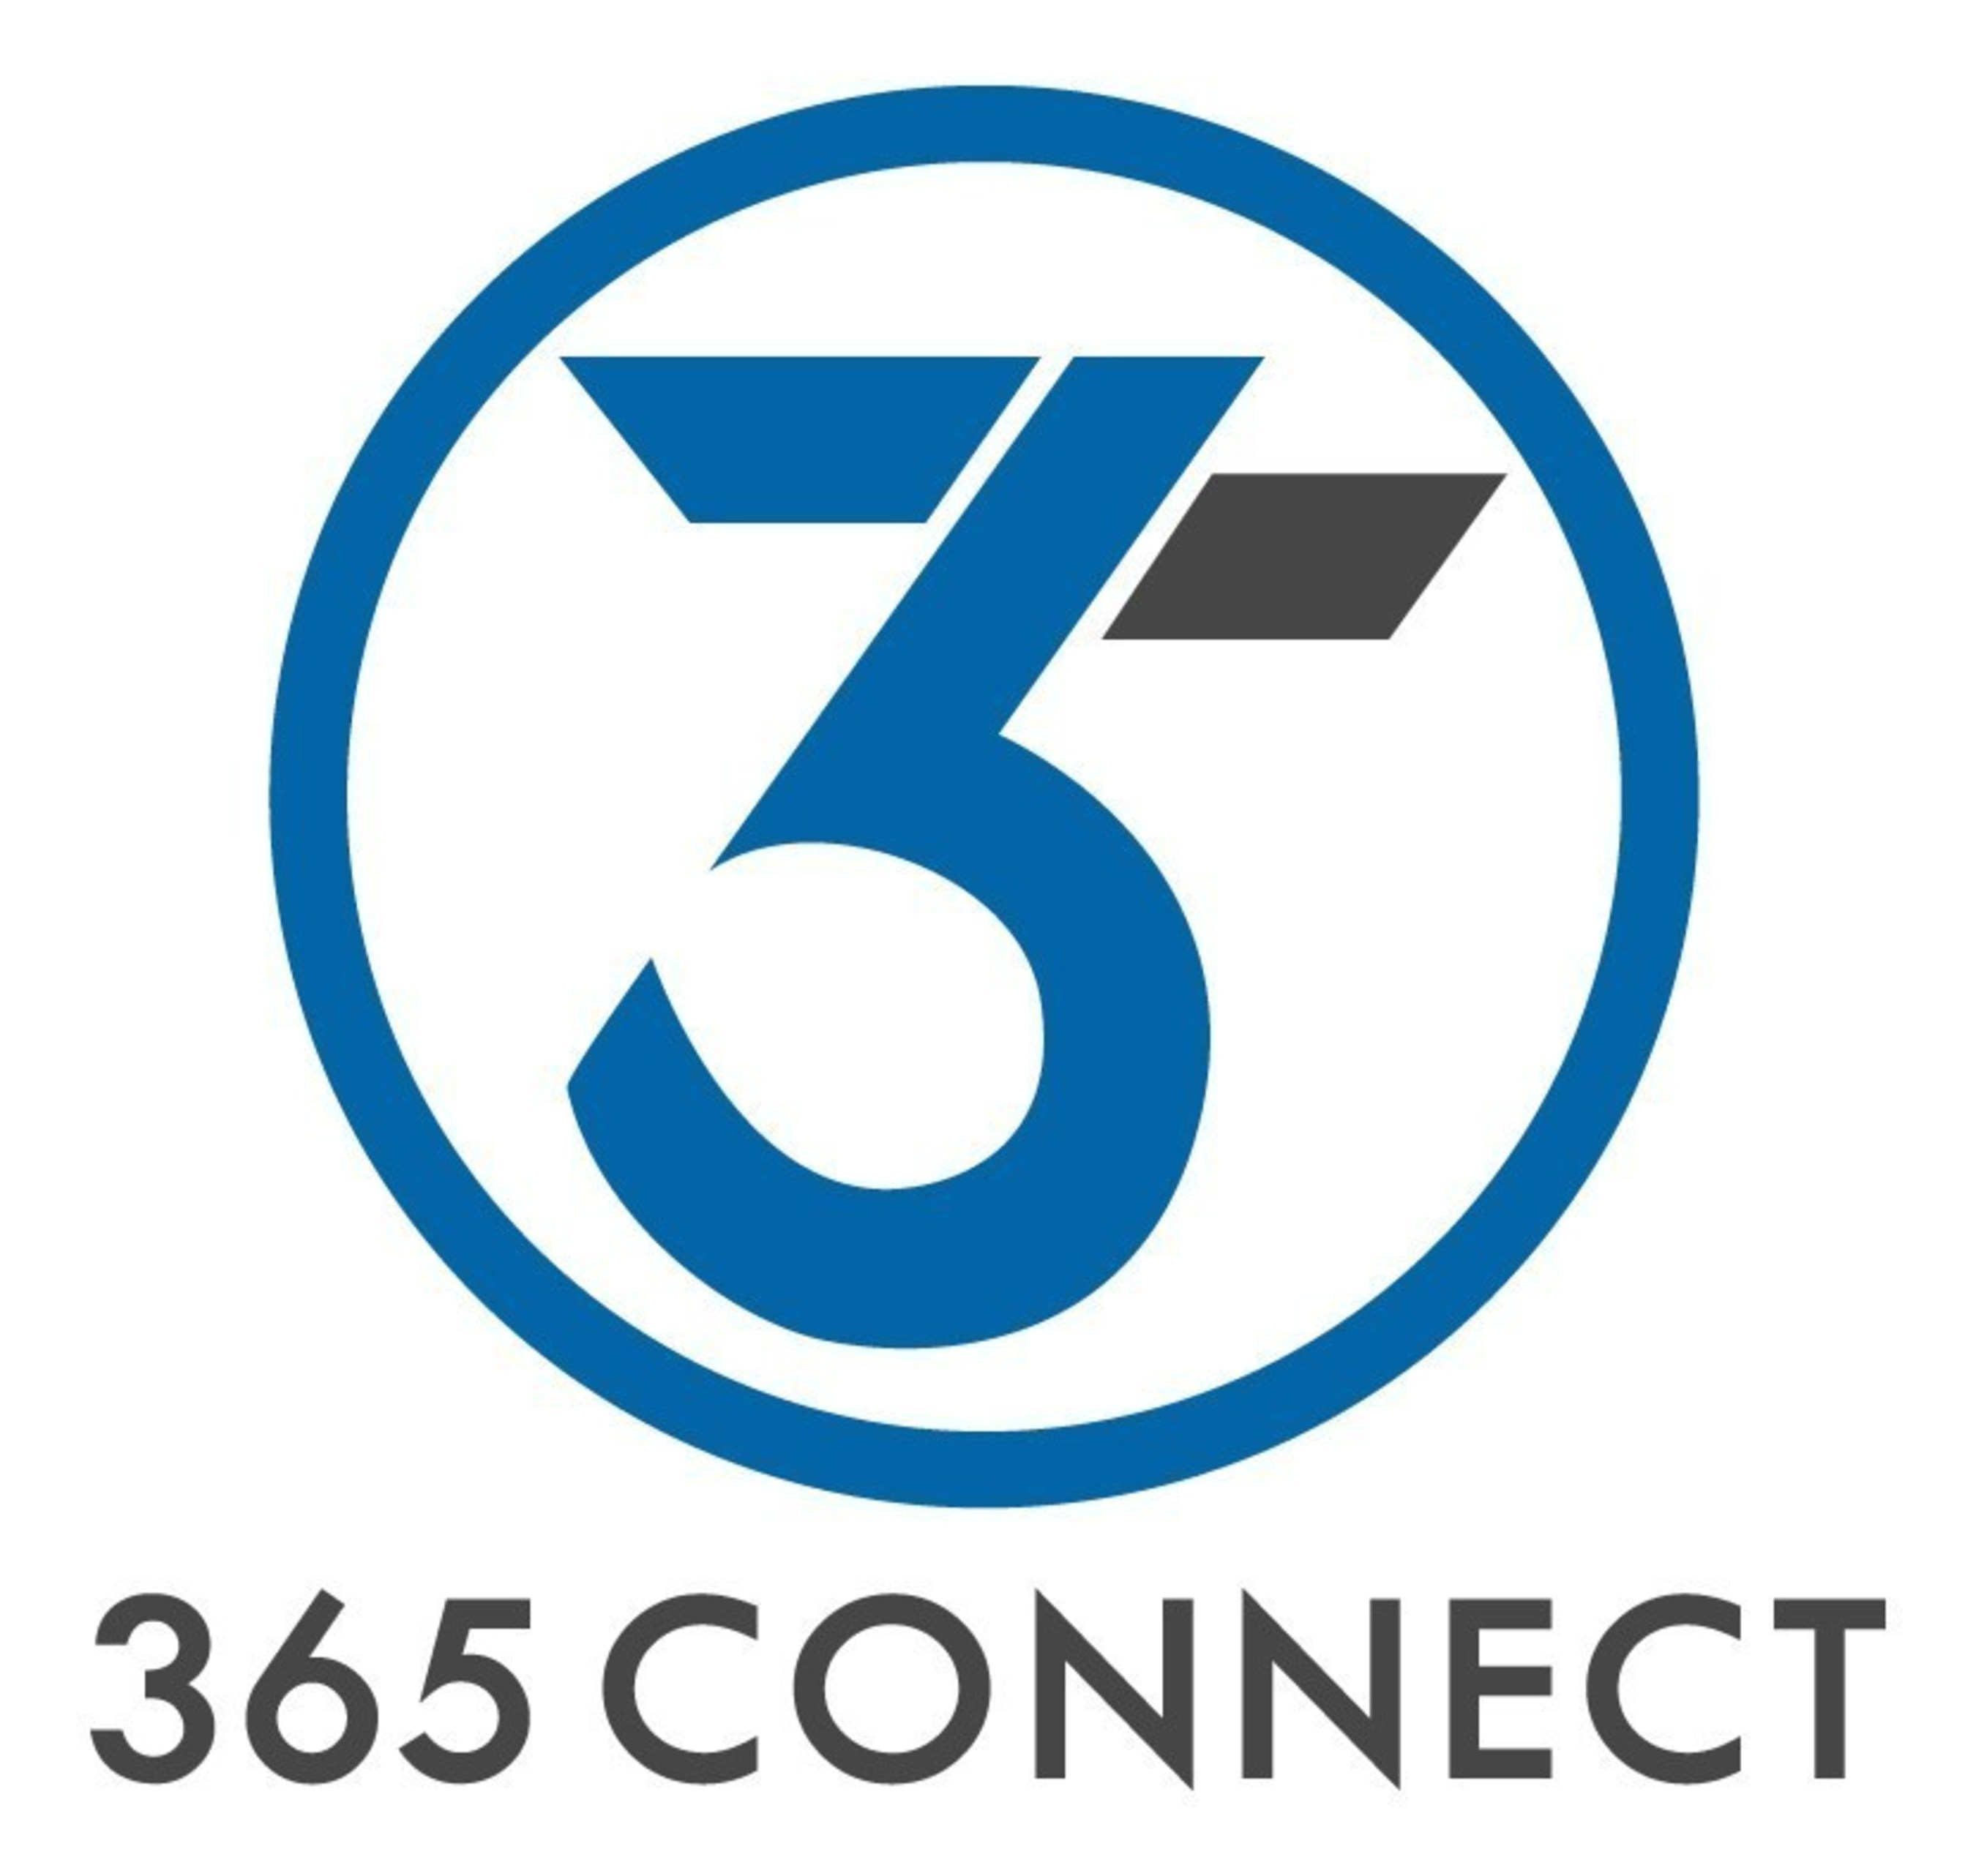 Ten Years After Hurricane Katrina, Award-Winning New Orleans Tech Company 365 Connect Symbolizes